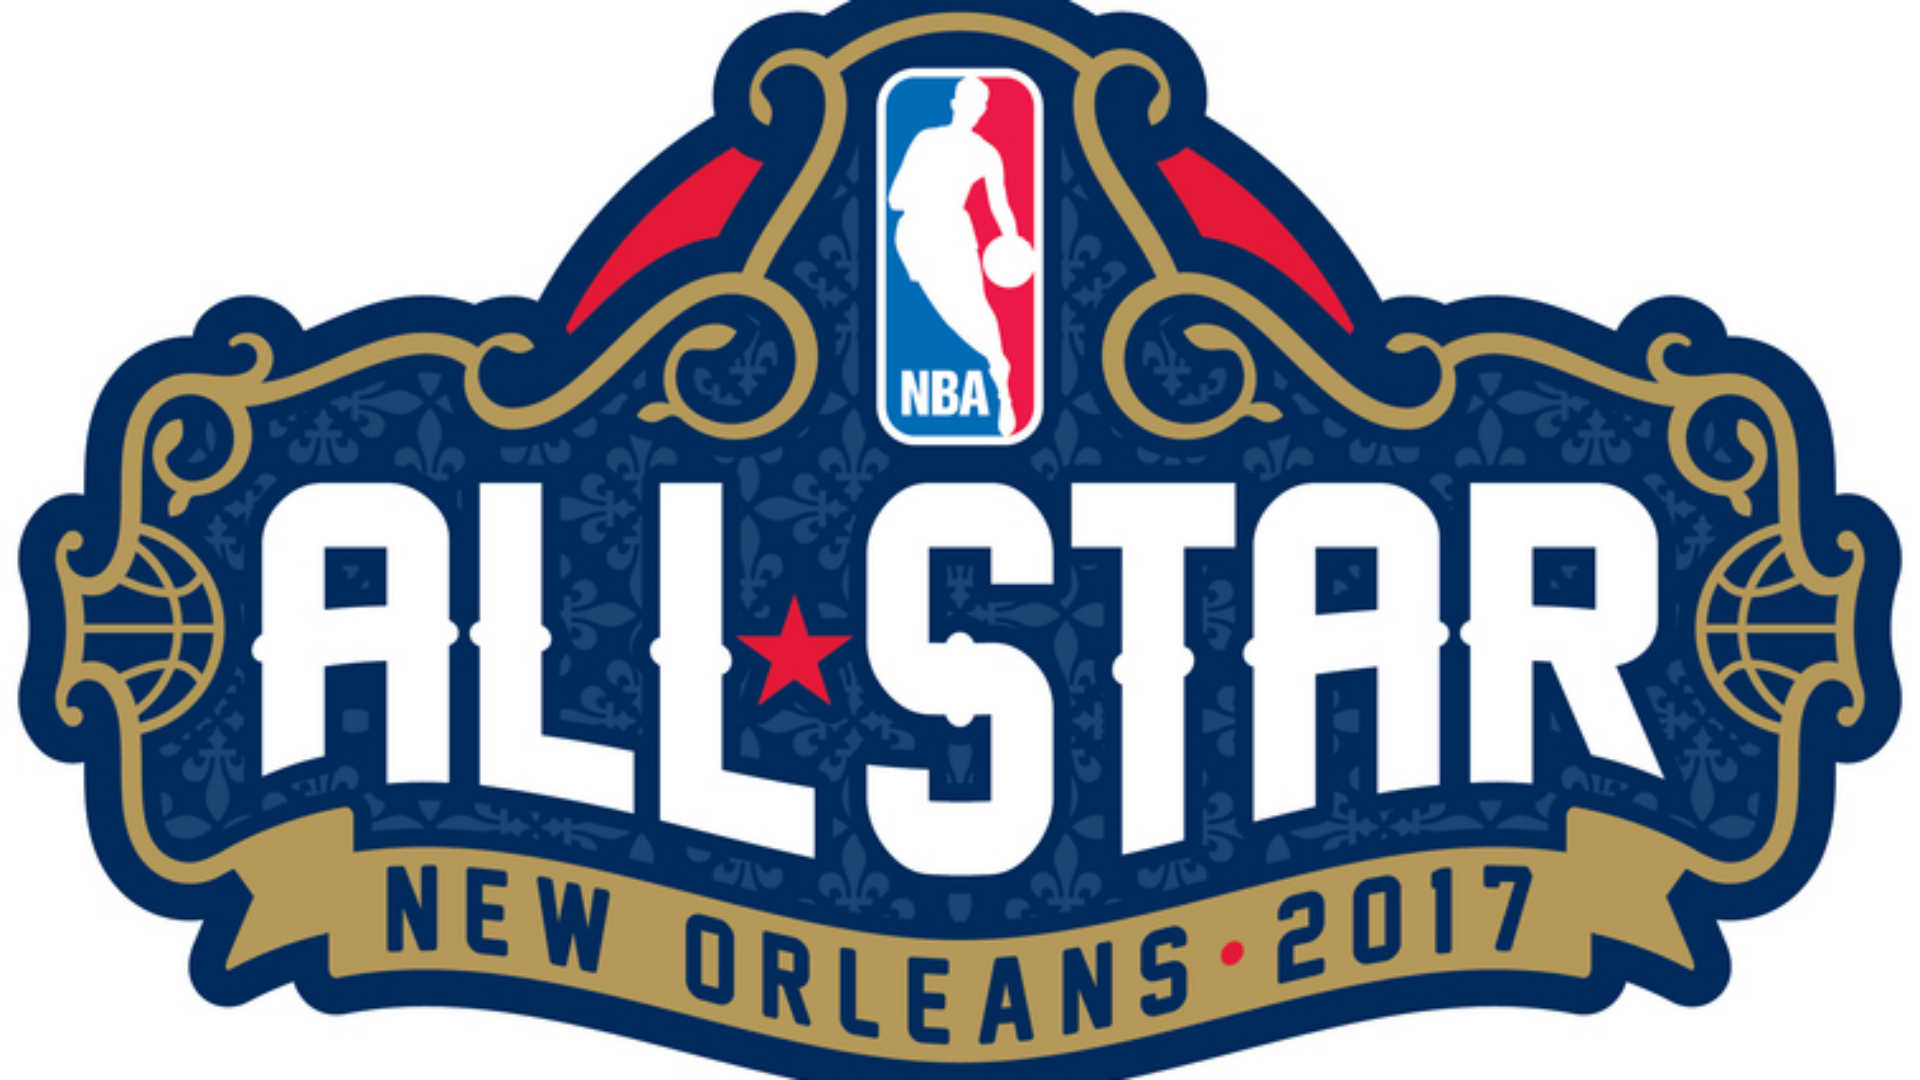 2017 all star game tickets nba - 2017 All Star Game Tickets Nba